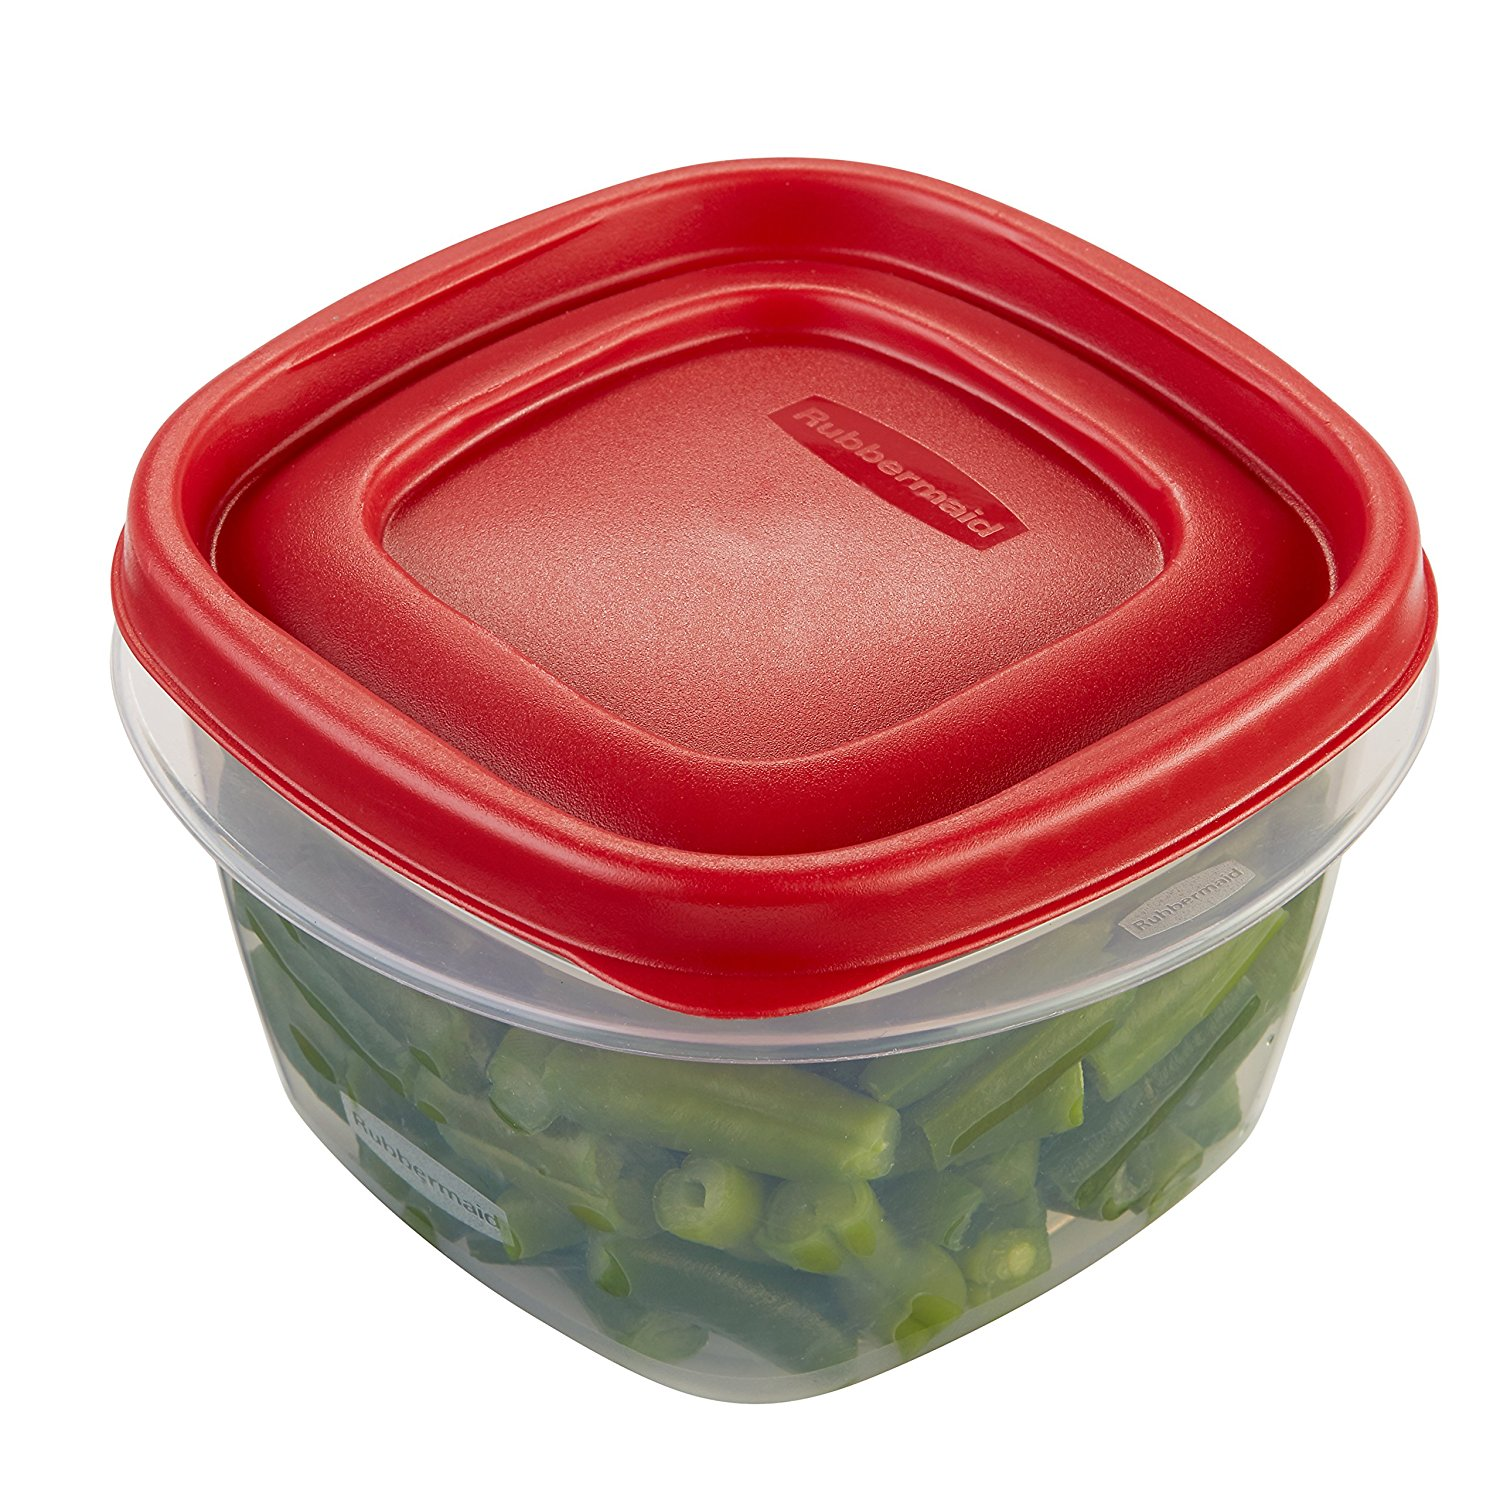 Rubbermaid 7J60 Easy Find Lid Square 2-Cup Food Storage Container - Walmart.com  sc 1 st  Walmart & Rubbermaid 7J60 Easy Find Lid Square 2-Cup Food Storage Container ...